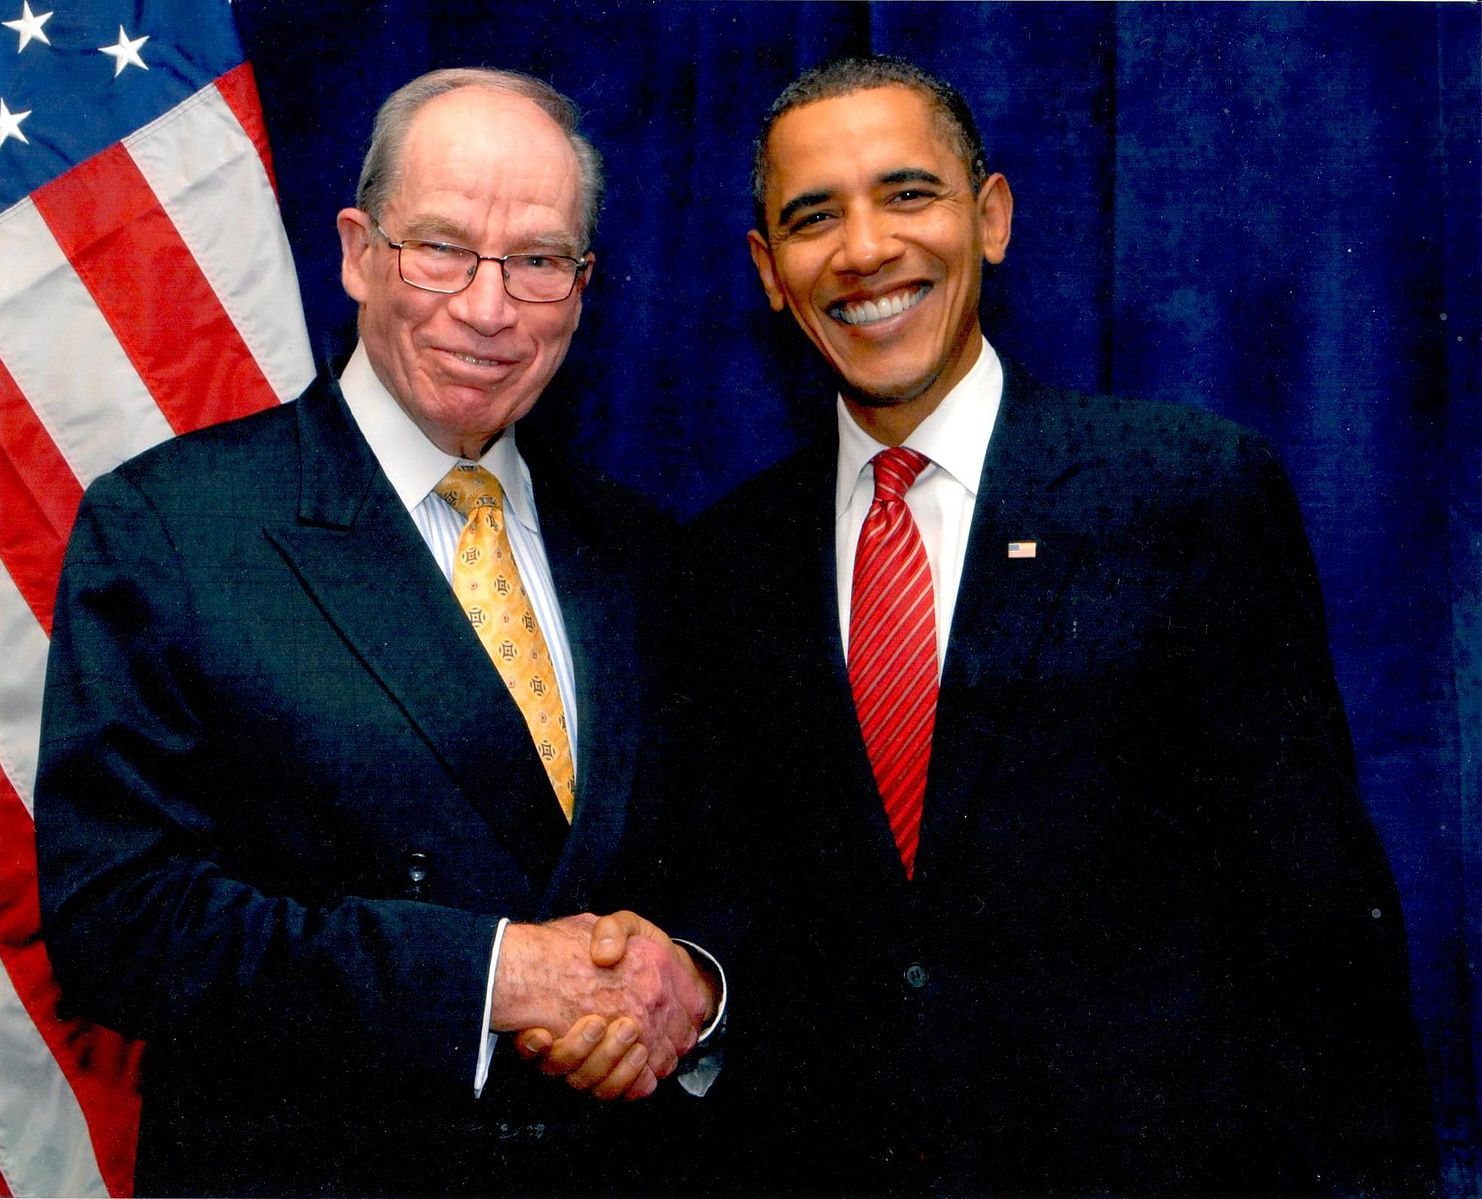 Herb_Klein_and_Barack_Obama.jpg